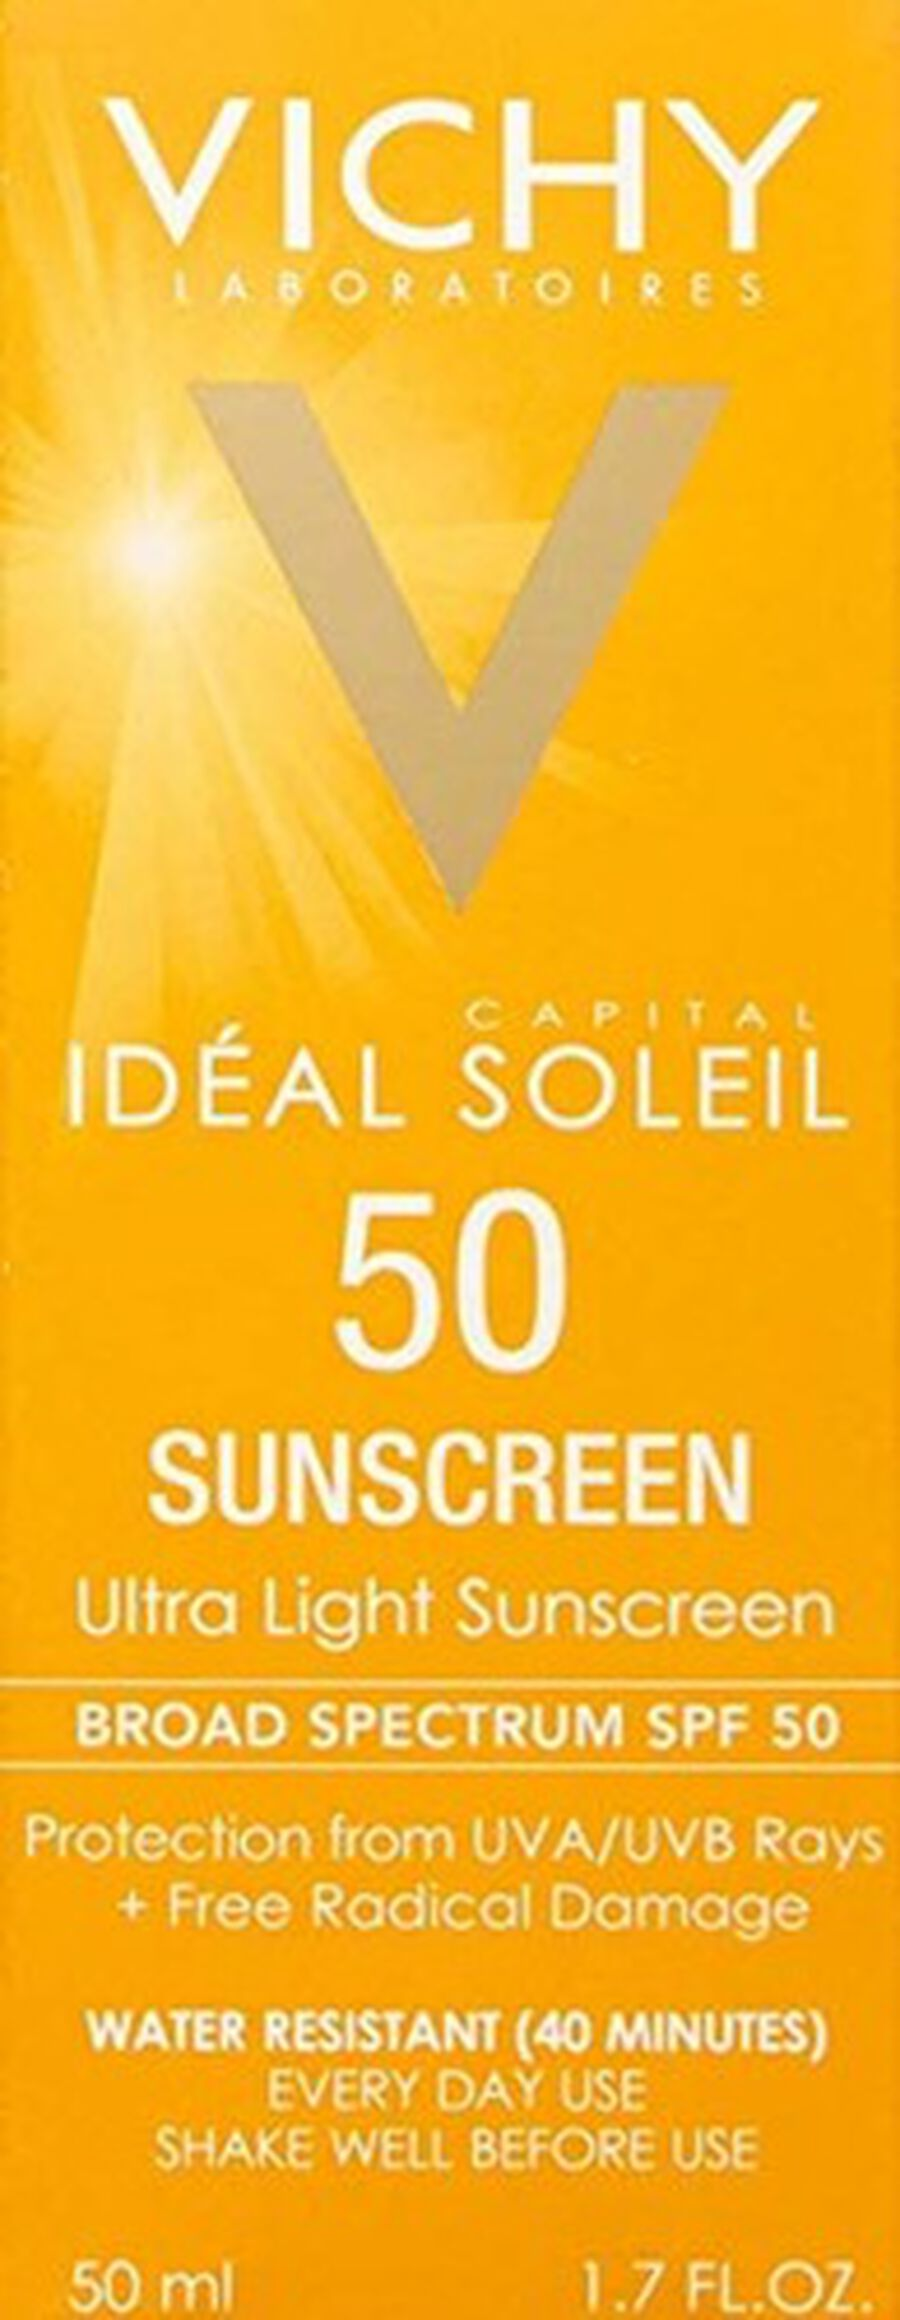 Vichy Idéal Capital Soleil SPF 50 Ultra-Light Face Sunscreen with Antioxidants and Vitamin E, 1.7 Fl. Oz., , large image number 2